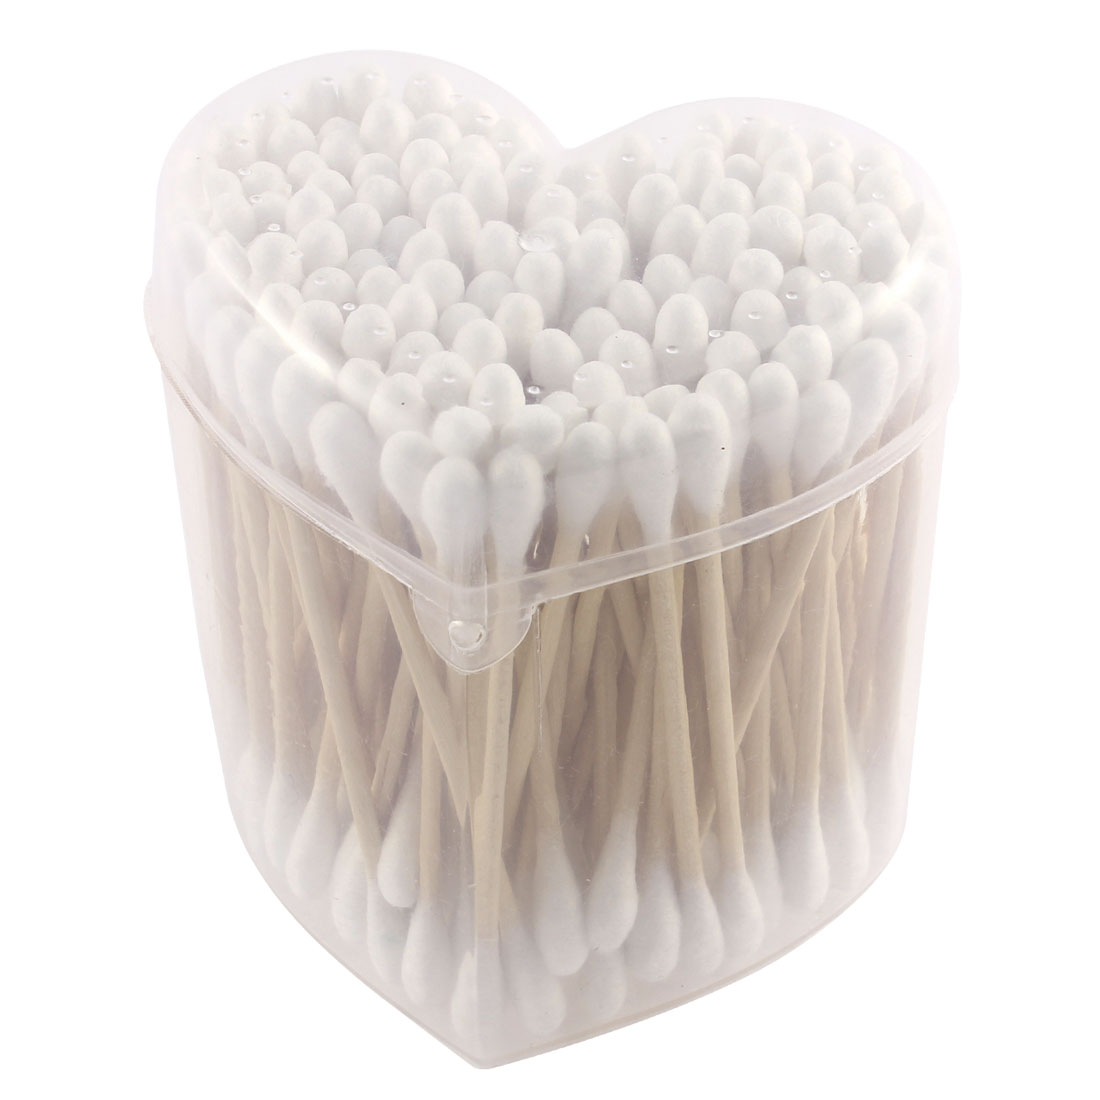 130pcs Wood Rod Double Head Cotton Swab Bud Ear Picks Applicators Cosmetics Removing Tool w Heart Shaped Case